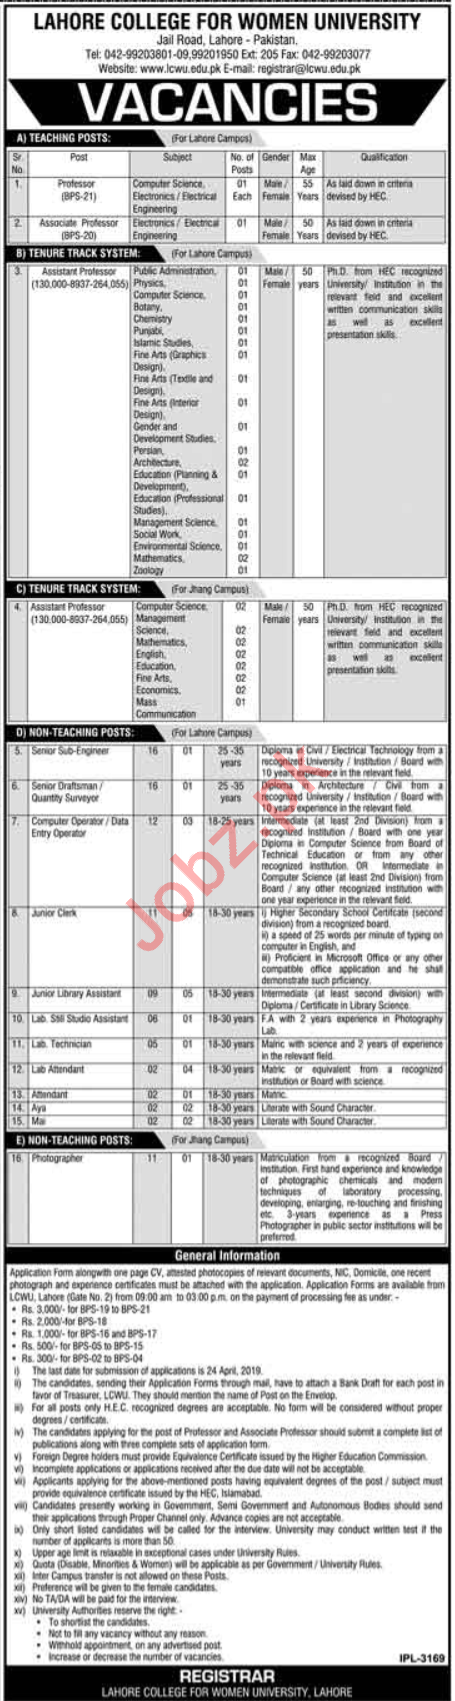 LCWU Lahore College For Women University Jobs 2019